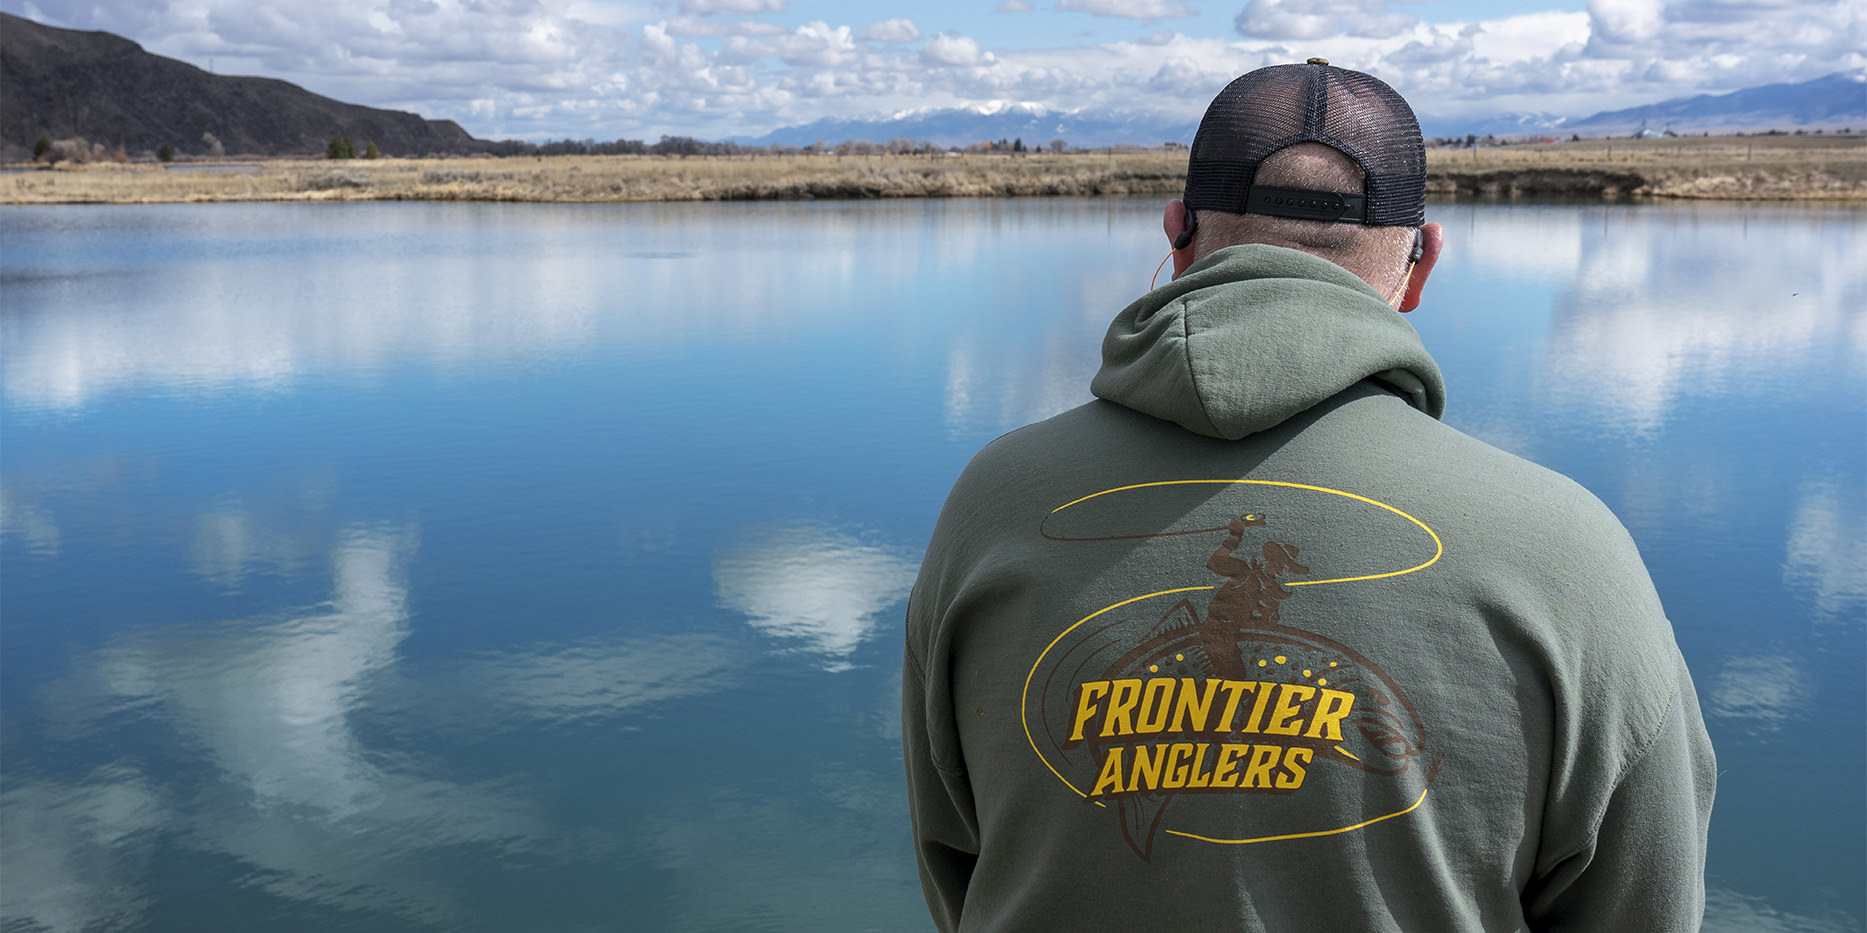 Frontier Anglers contact information